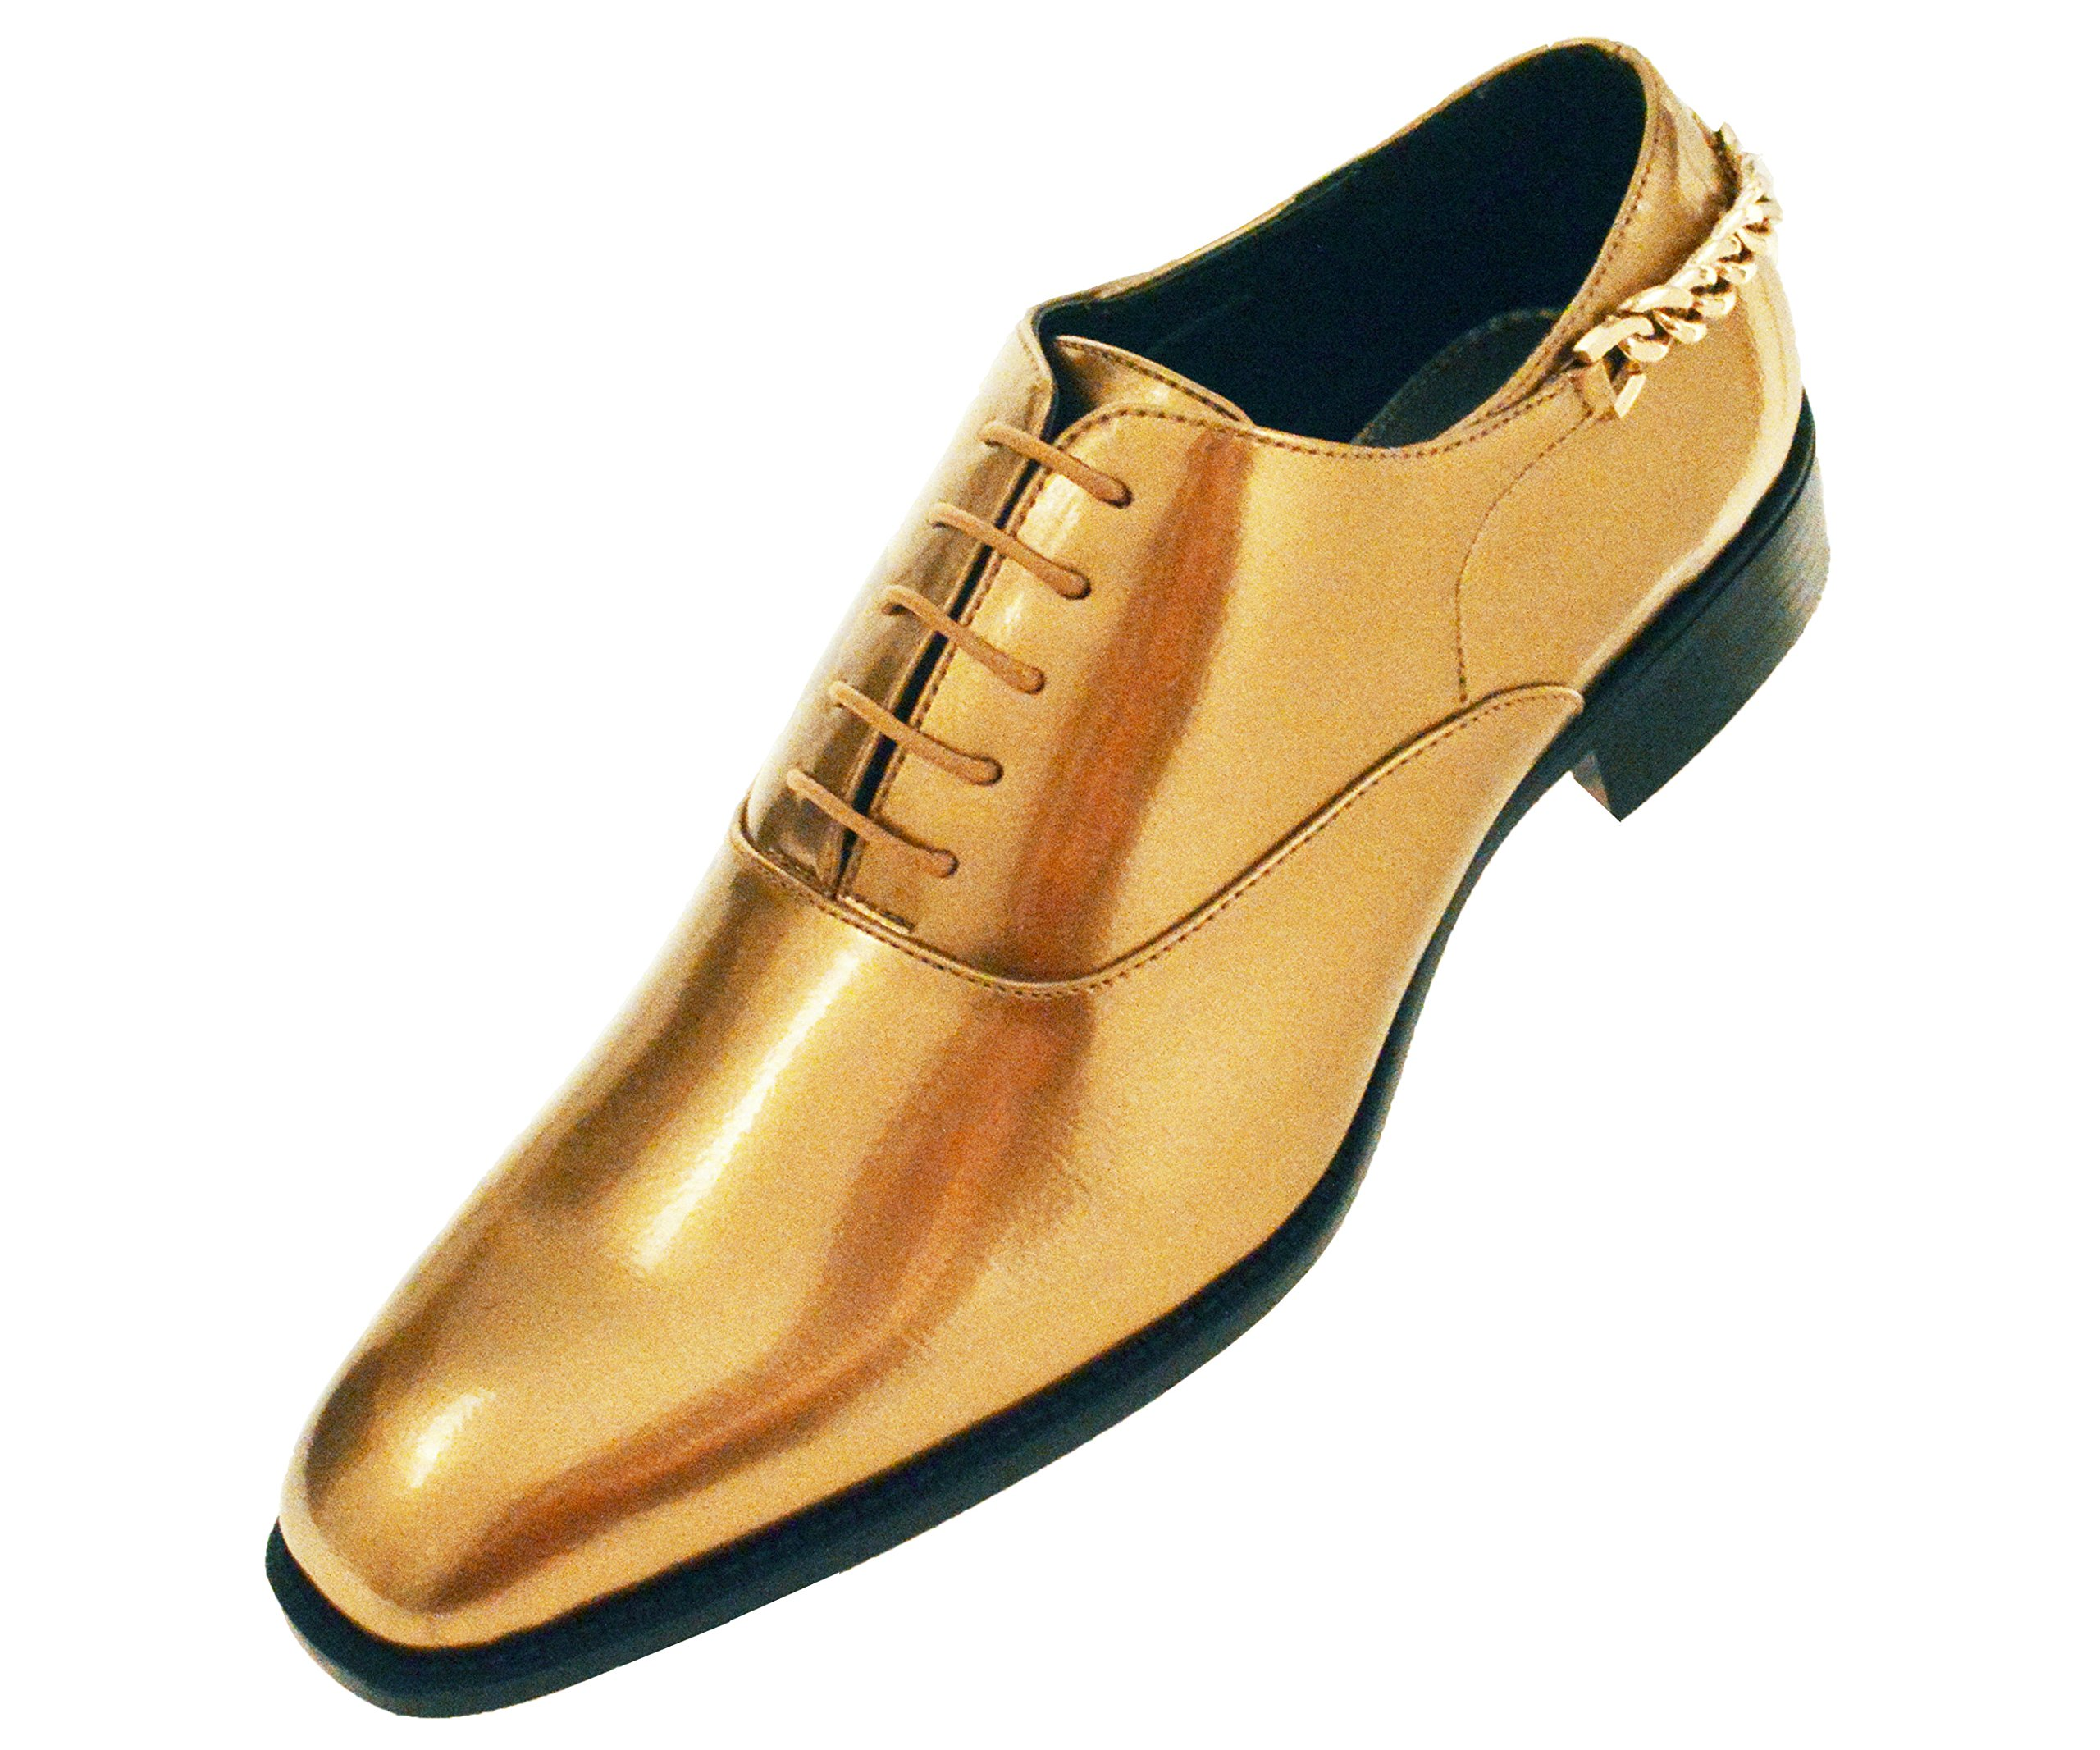 Bolano Mens Smooth Shiny Patent Plain Toe Oxford Dress Shoe with Gold Heel Chain